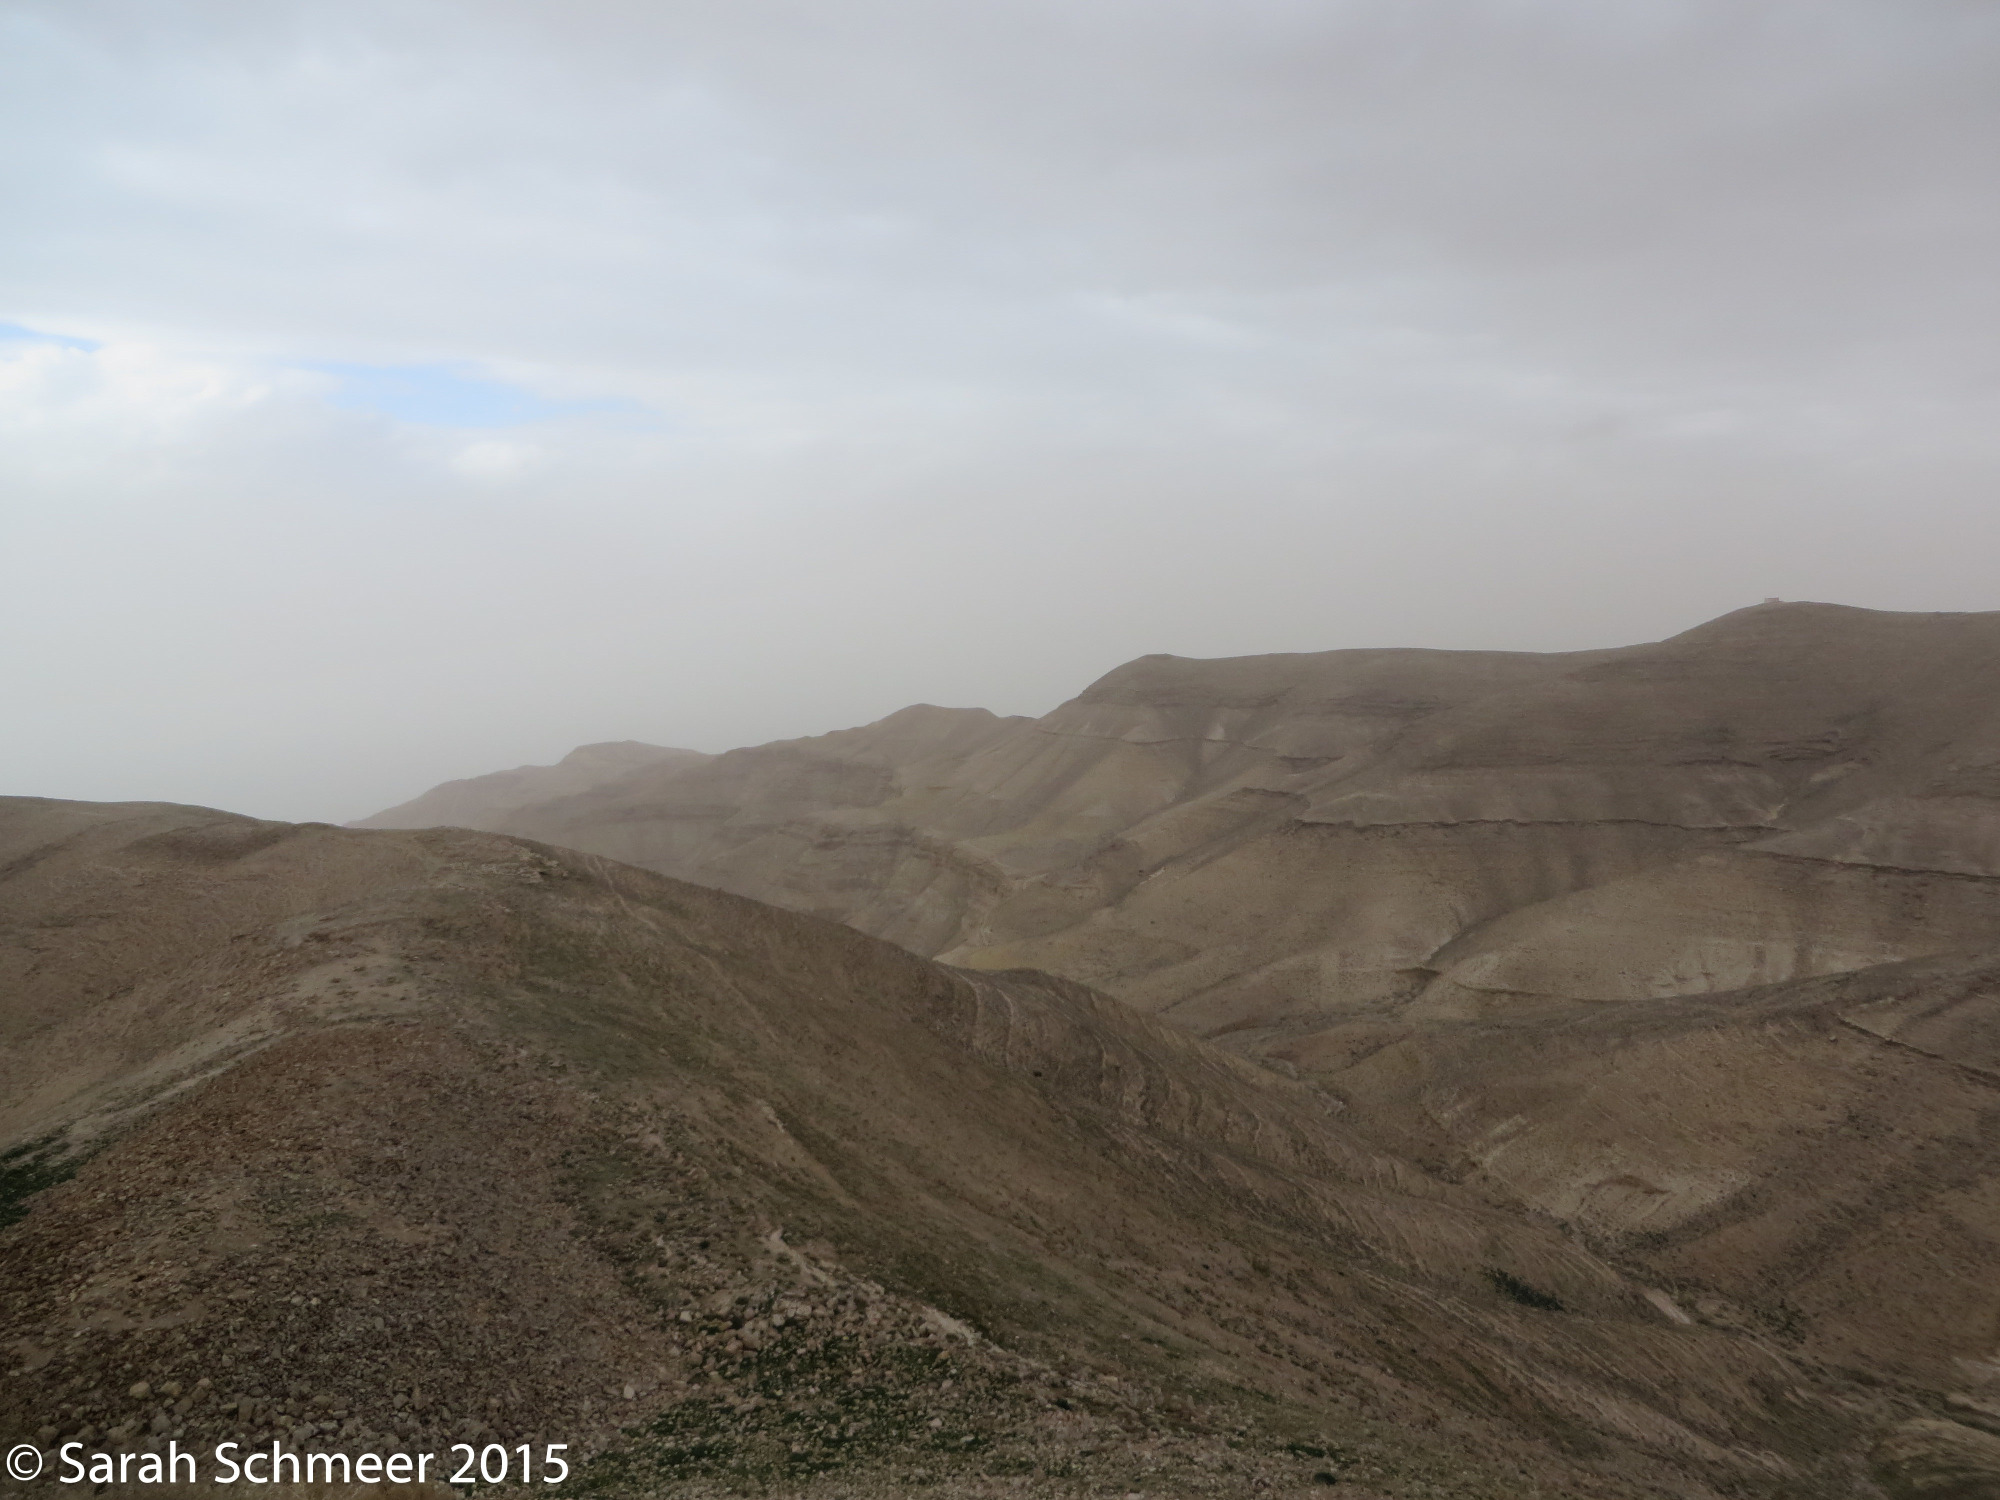 The desolate view toward the Dead Sea from Mukawir.